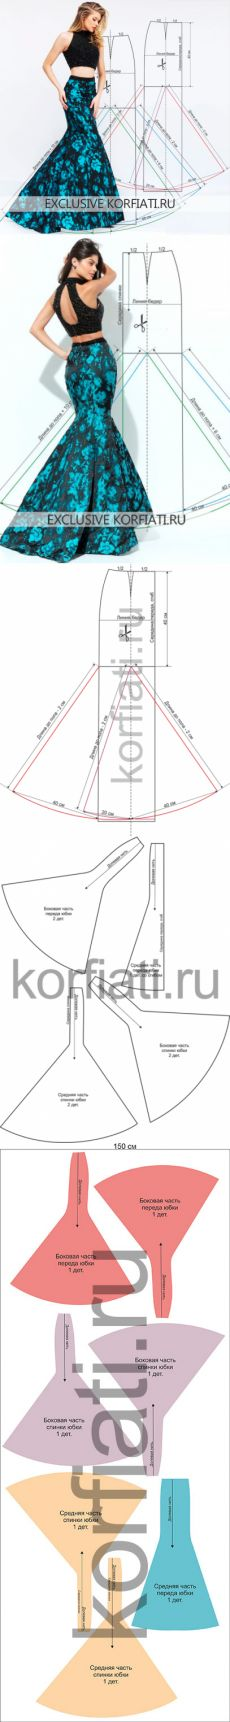 korfiati.ru Sewing Machine Projects, Textiles, Mermaid Skirt, Bridal Collection, Sewing Patterns, Style Inspiration, Couture, Skirts, Ursula